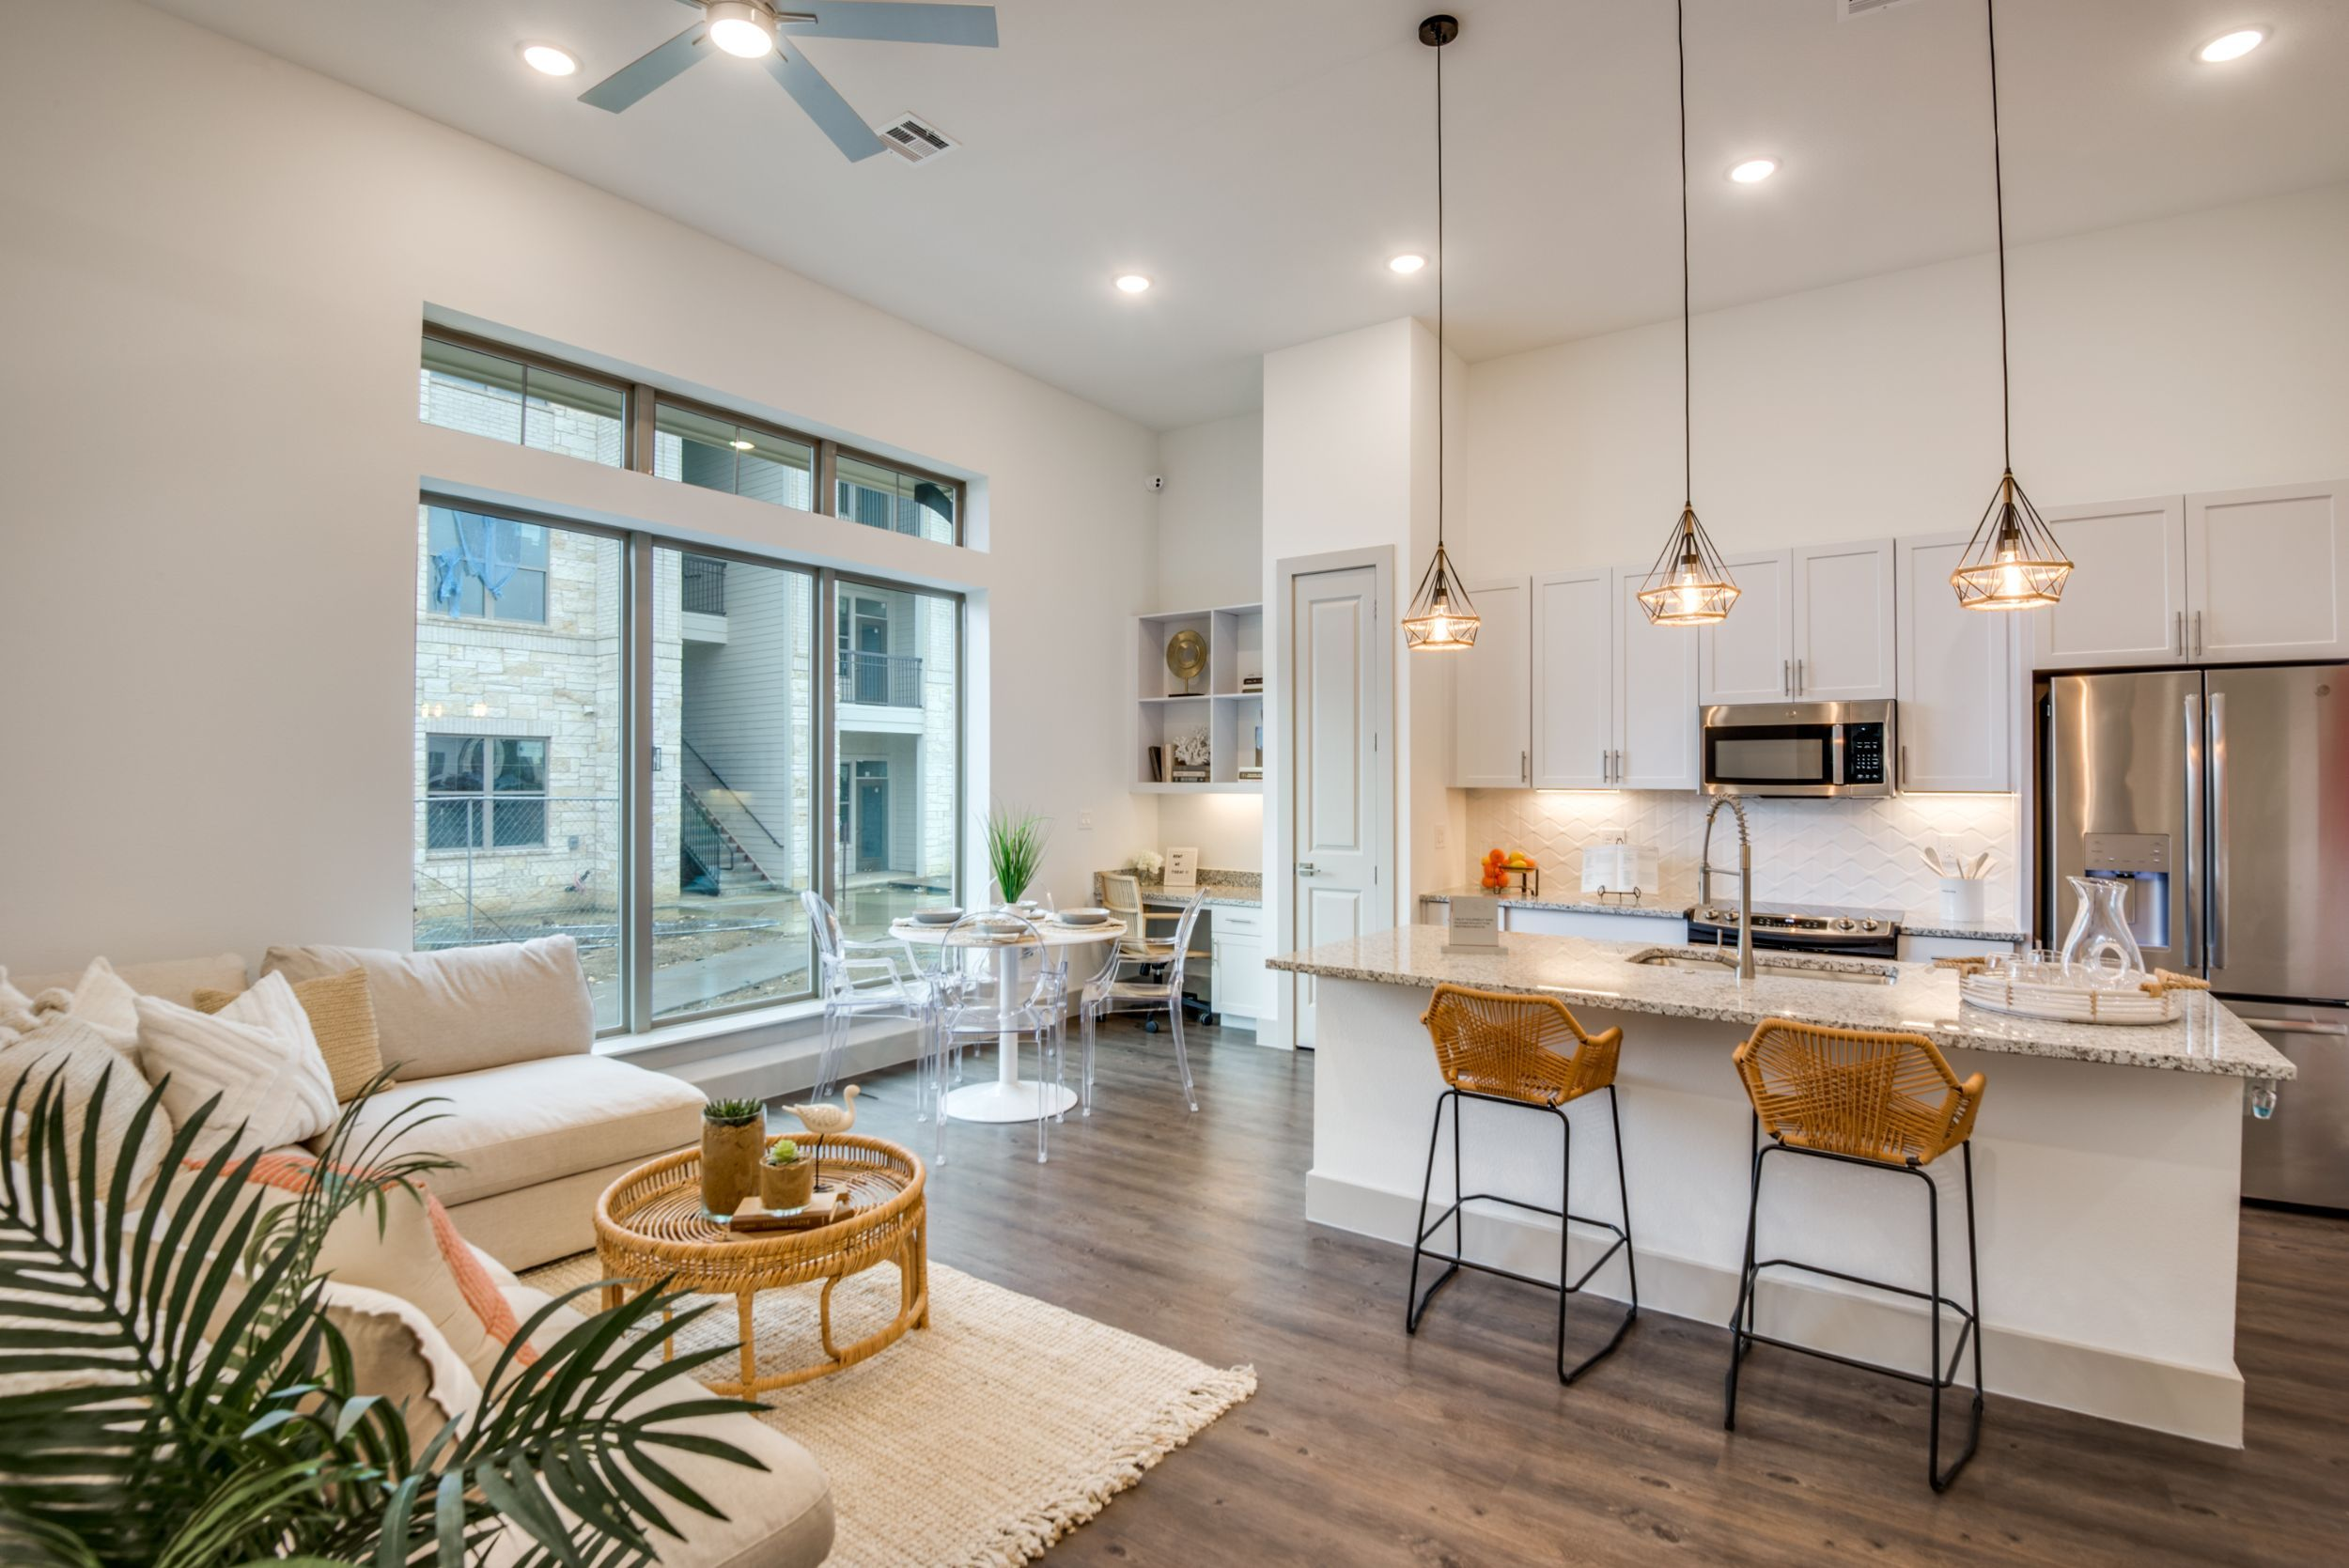 Apartment living and kitchen area with seating and bar